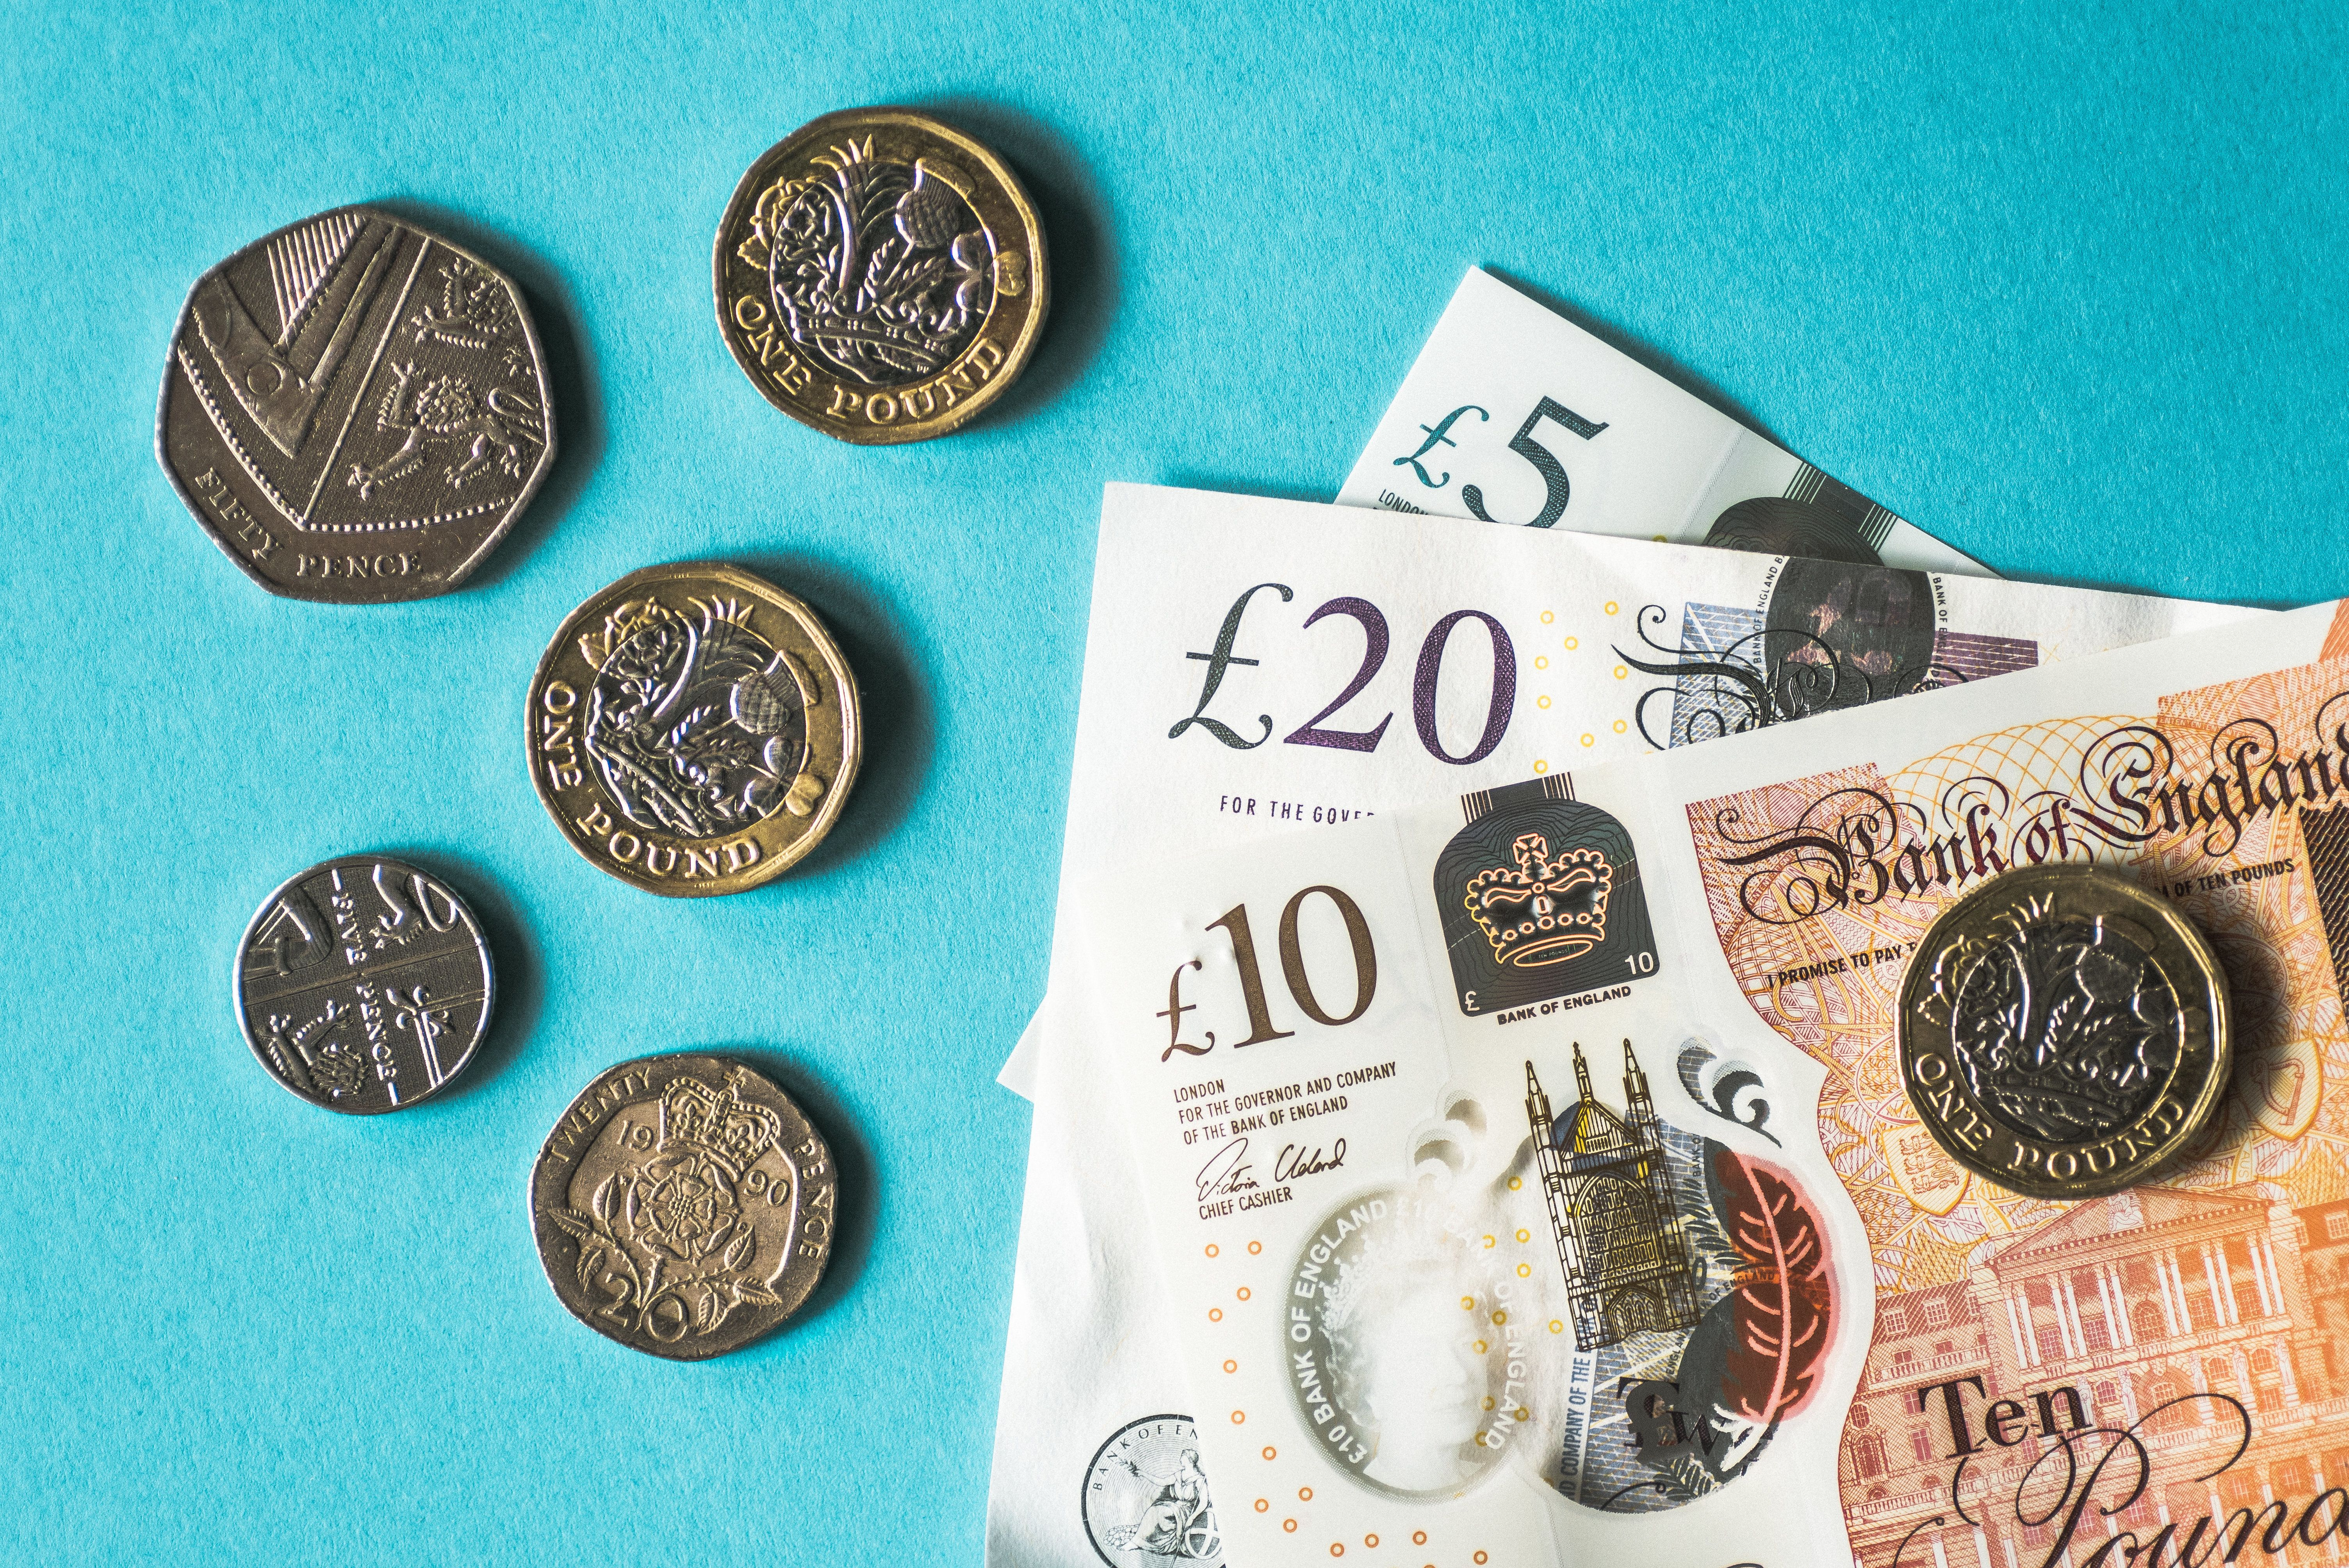 Teenagers Expect To Earn £70,000 By The Age Of 30: Let's Talk About